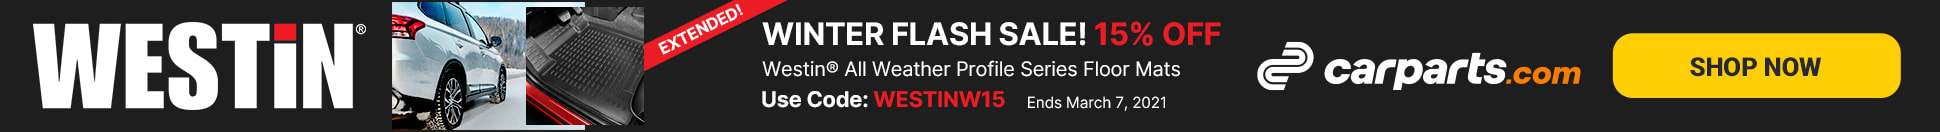 westin profile series flash sale extended